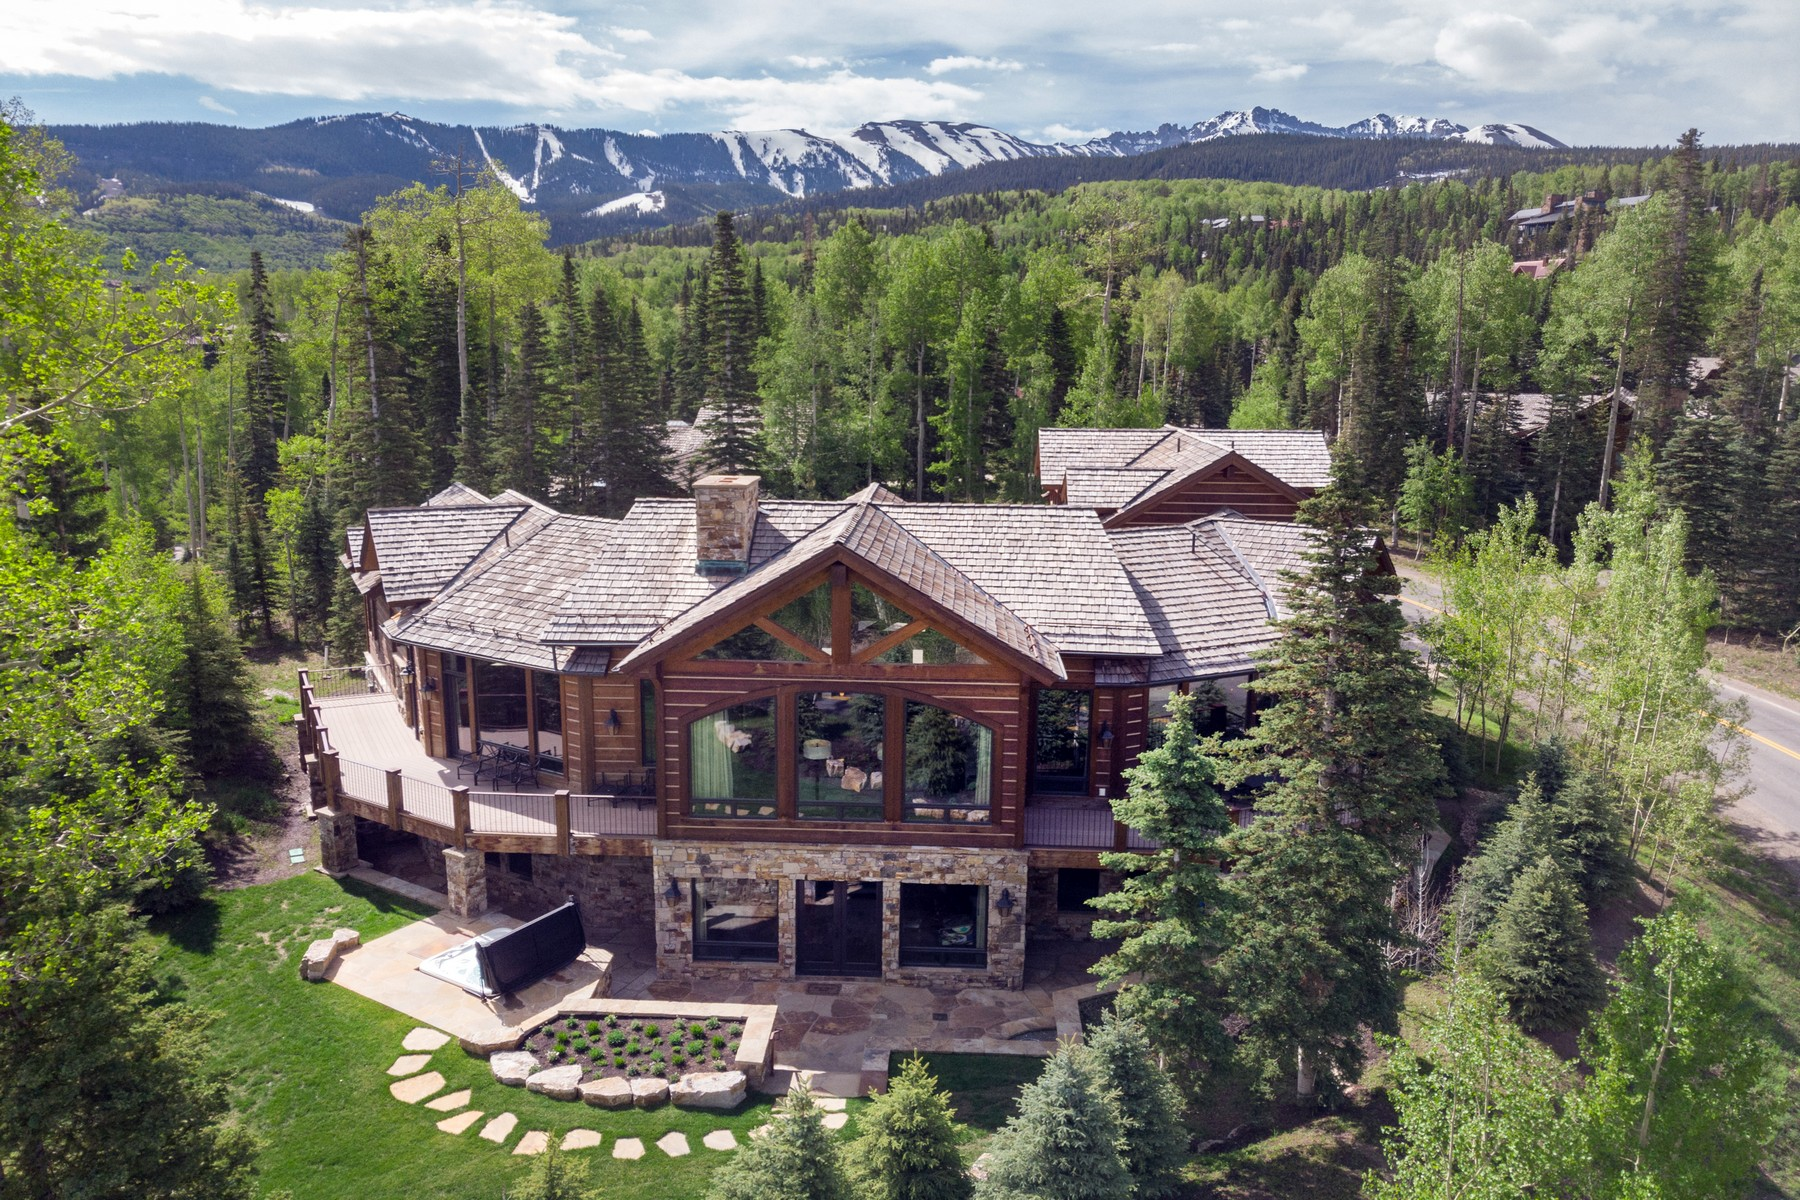 Single Family Homes for Sale at 225 Benchmark Drive Mountain Village Telluride, Colorado 81435 United States